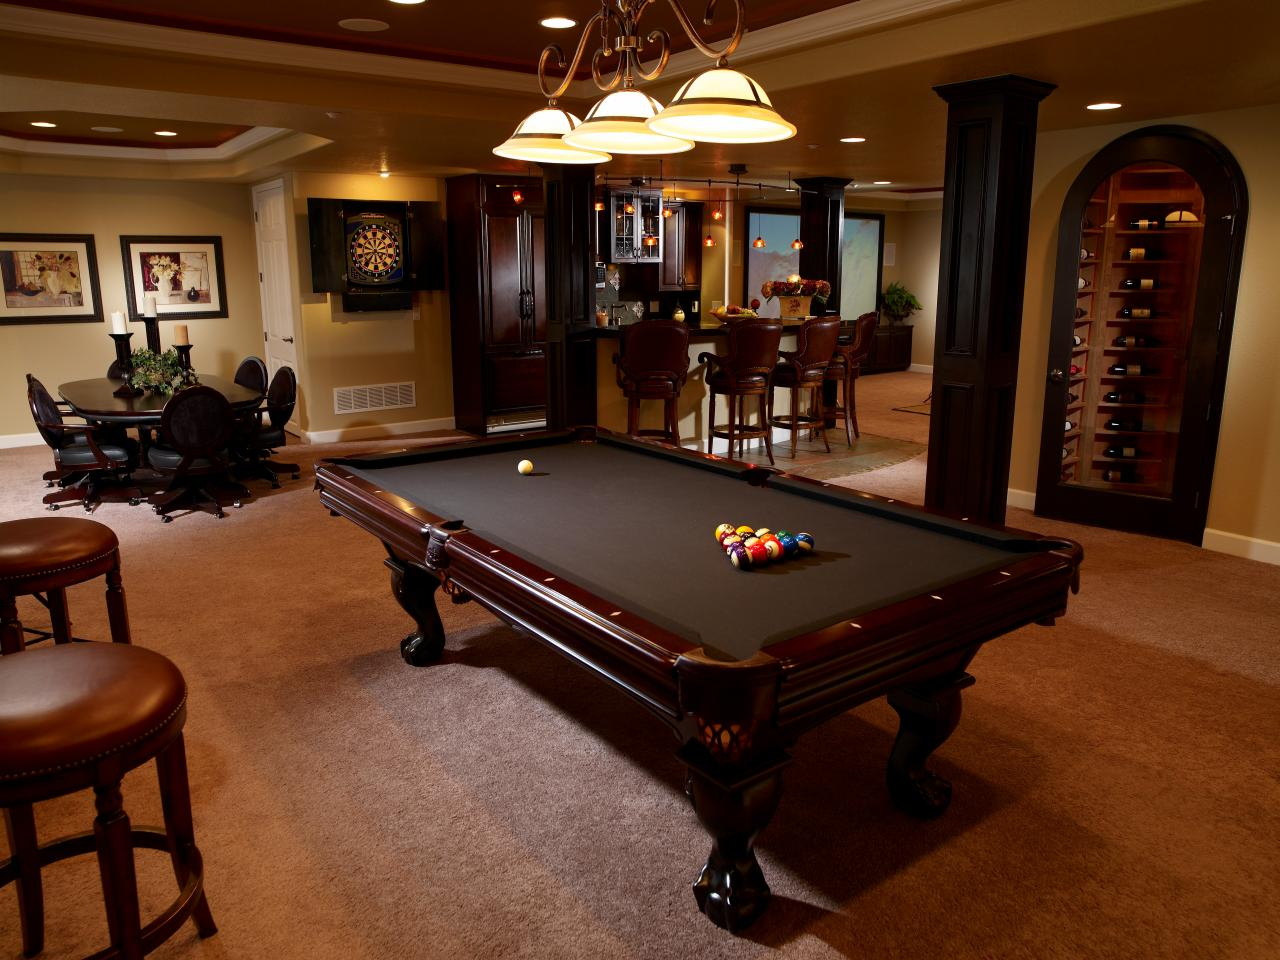 Basement Design Ideas Designing Any Room Can Be Tough But CI Design Your Basement Game Room Wine Cellar